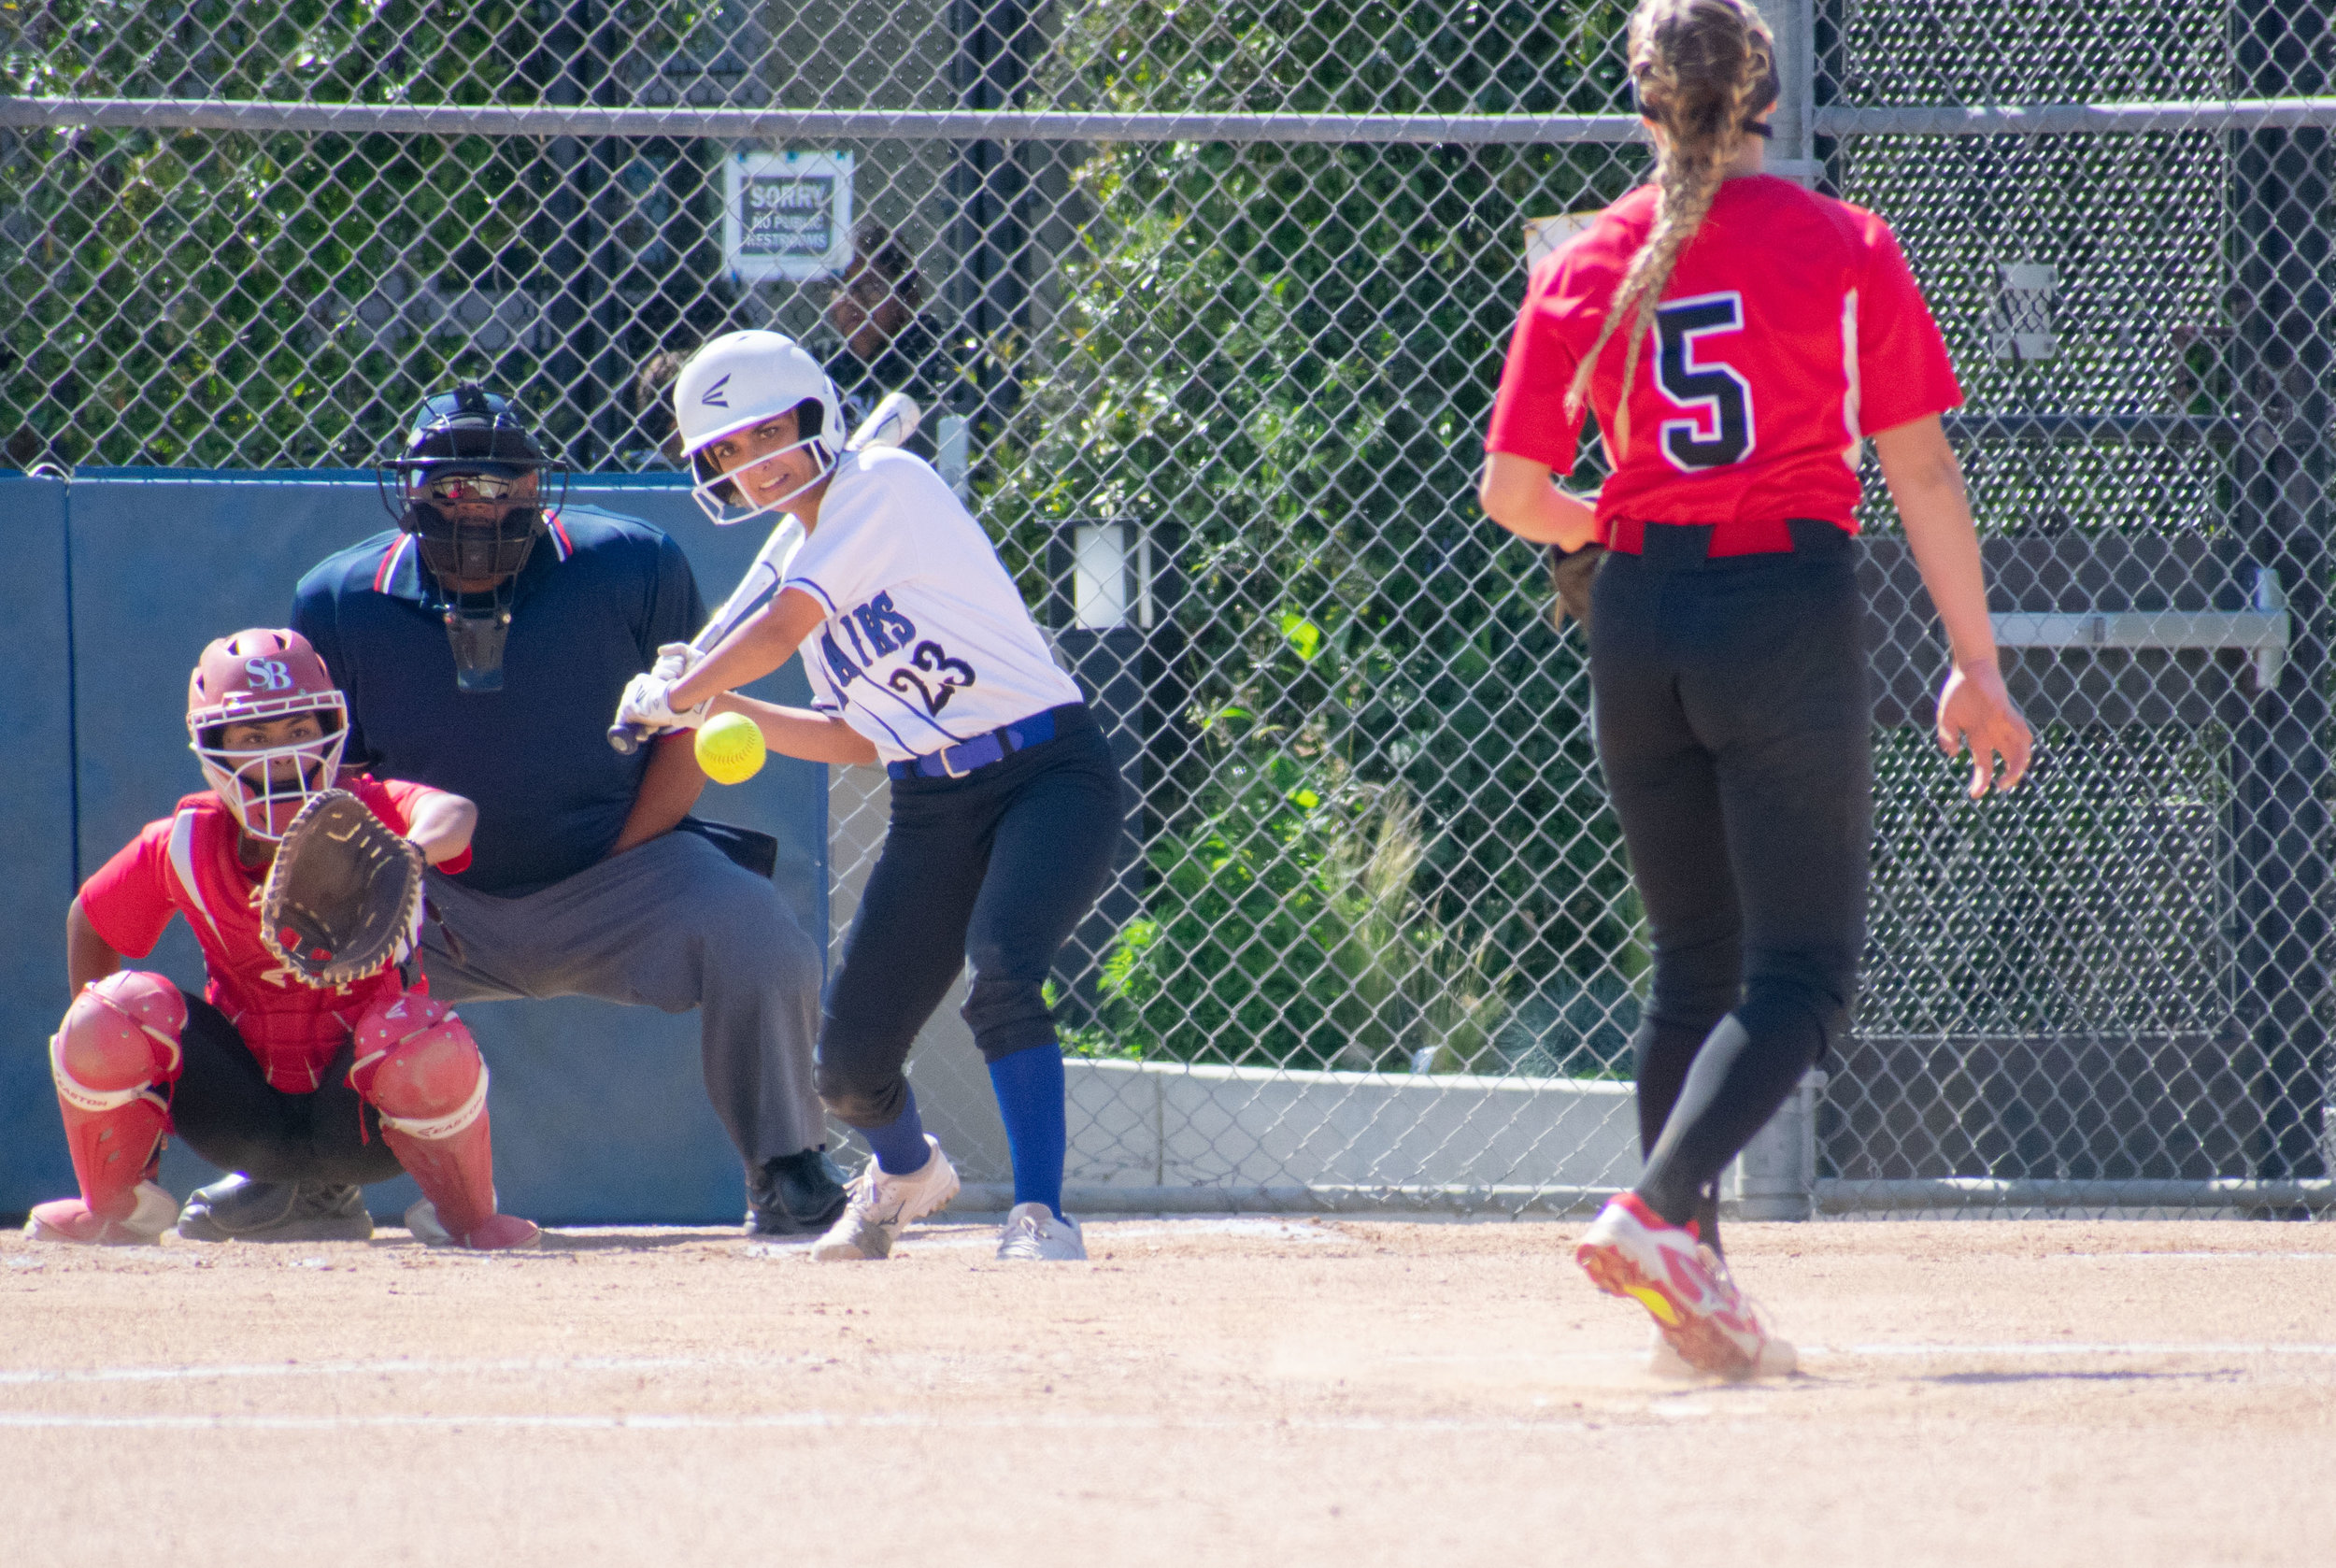 Santa Monica College Corsair Taylor Liebesman (#23) swings during the final game of the season against the Santa Barbara Vaqueros on Friday, April 20, 2018 at the John Adams Middle School Field in Santa Monica, California. The game was a 7-1 loss for the Corsairs, ending the season with an 8-21 record. (Ethan Lauren/Corsair Photo)